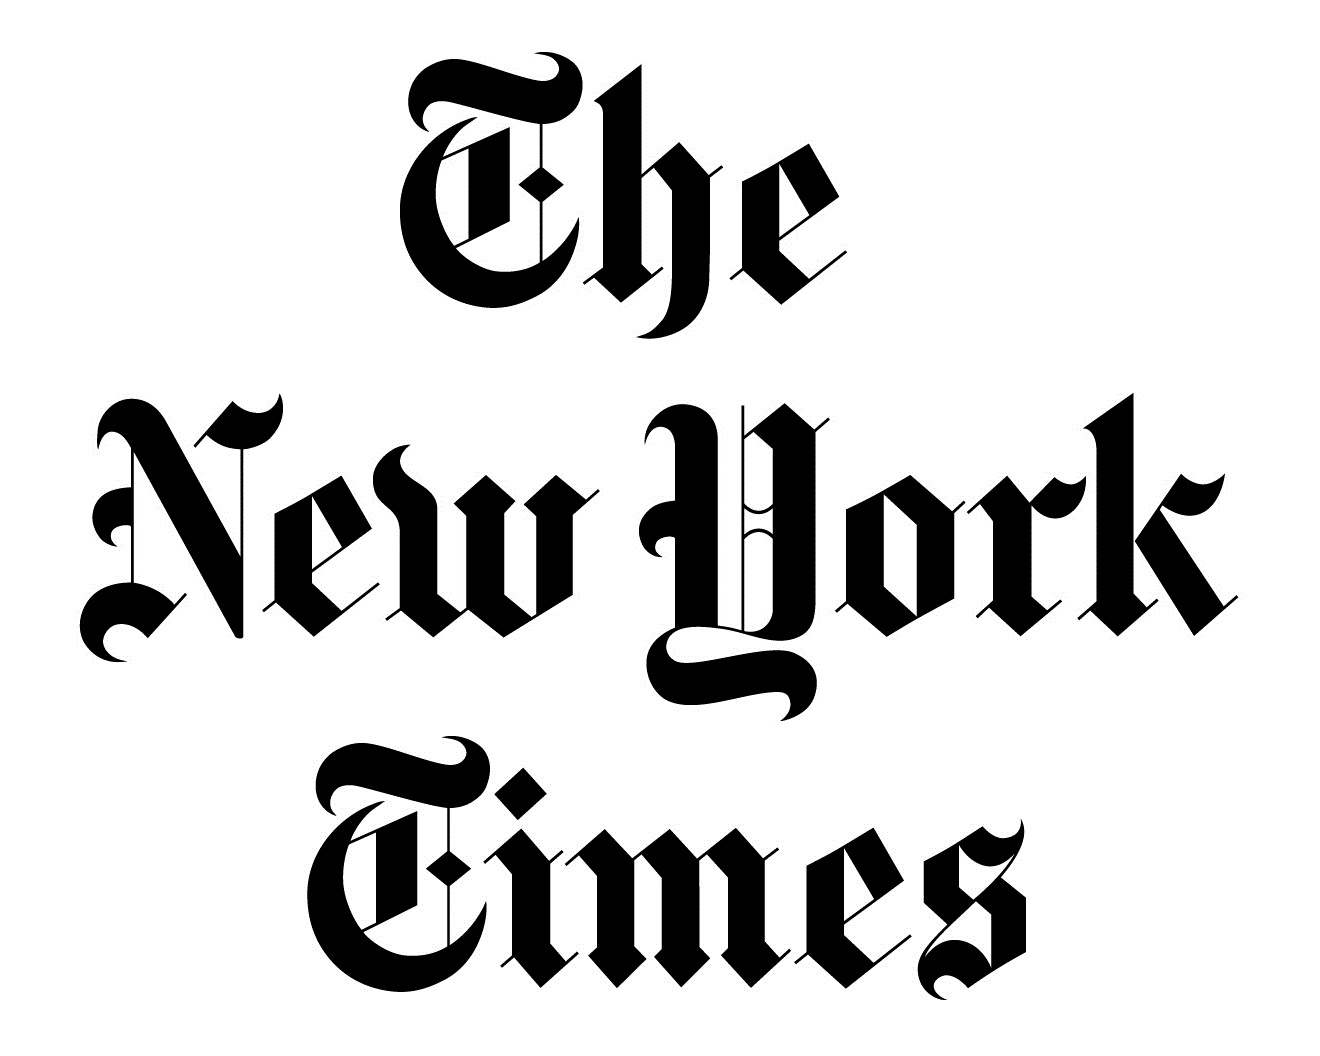 New_York_Times_logo_variation.jpg